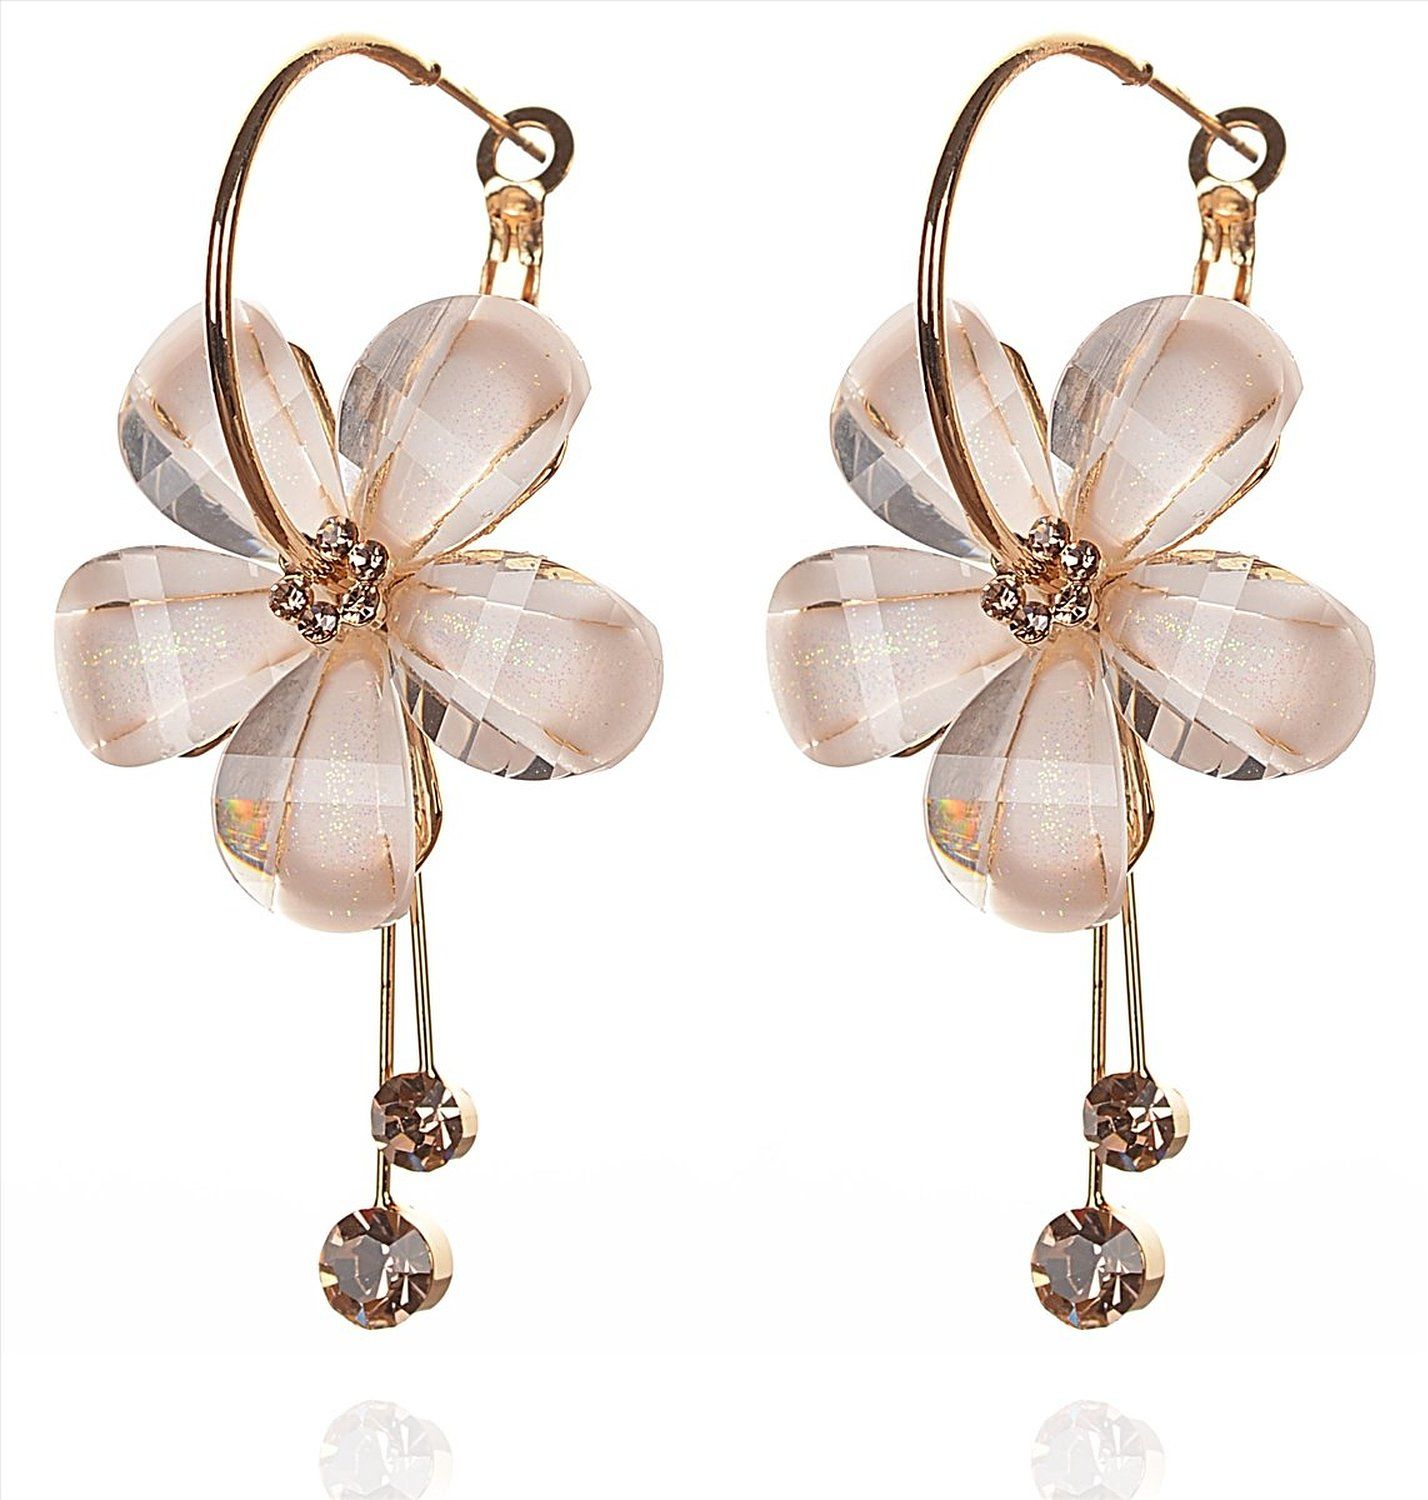 Buy Zephyrr Fashion Hanging Hoop Earrings Flower White Peach Stone for Women Online at Low Prices in India   Amazon Jewellery Store - Amazon.in